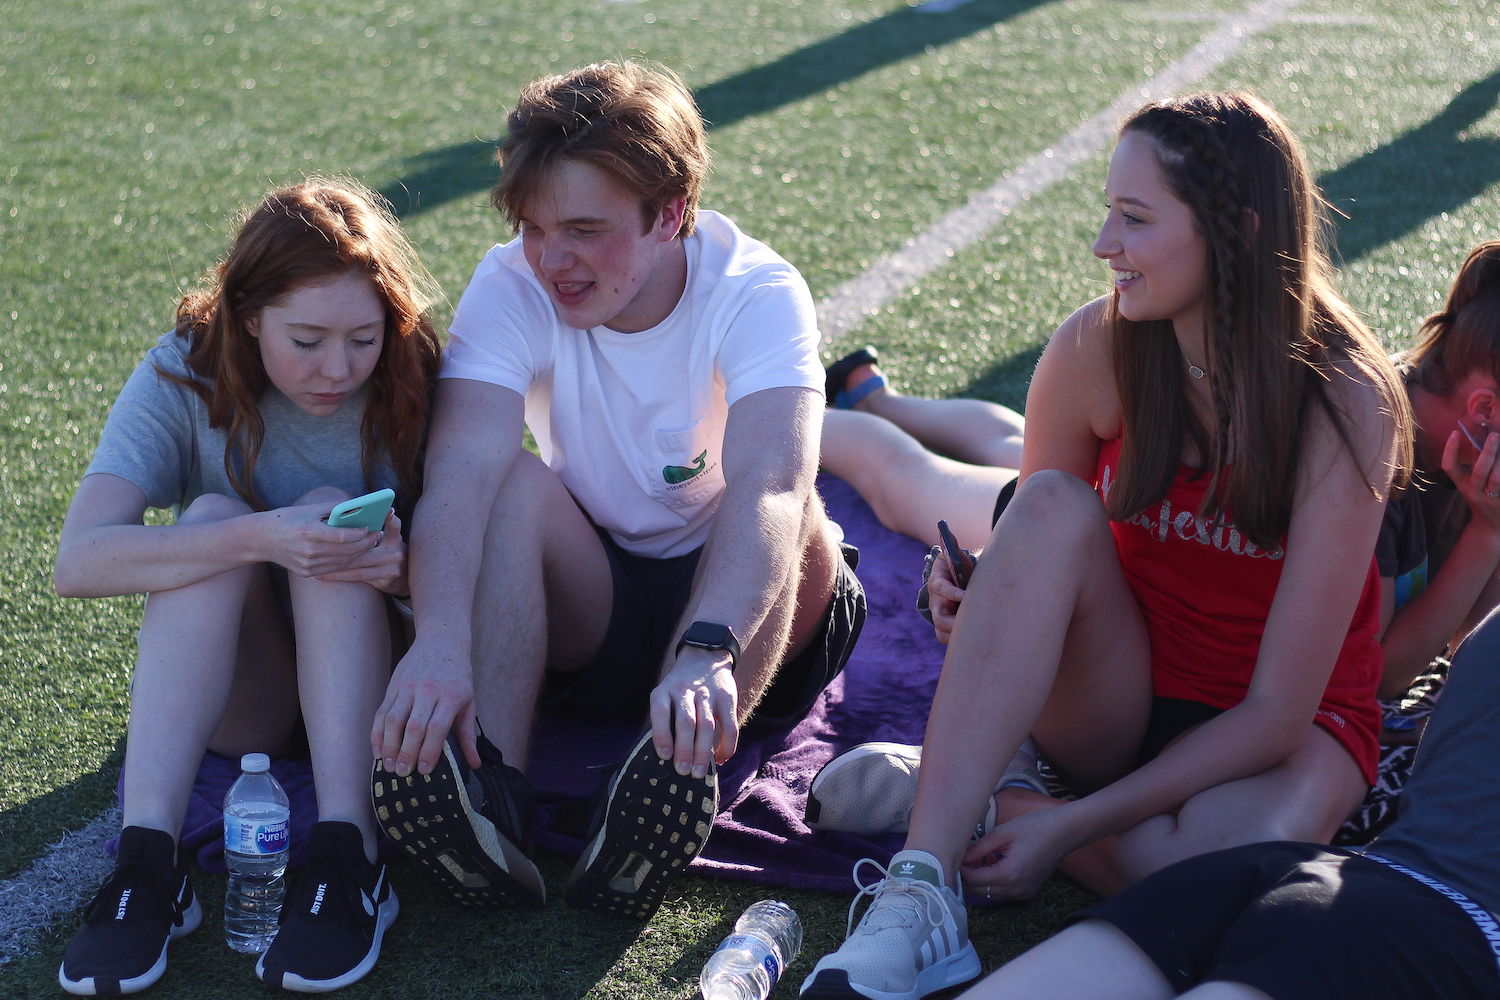 Juniors+Kaleigh+Knack%2C+Noah+Cooper+and+Lauren+Motsney+chat+while+sitting+together+on+the+field.